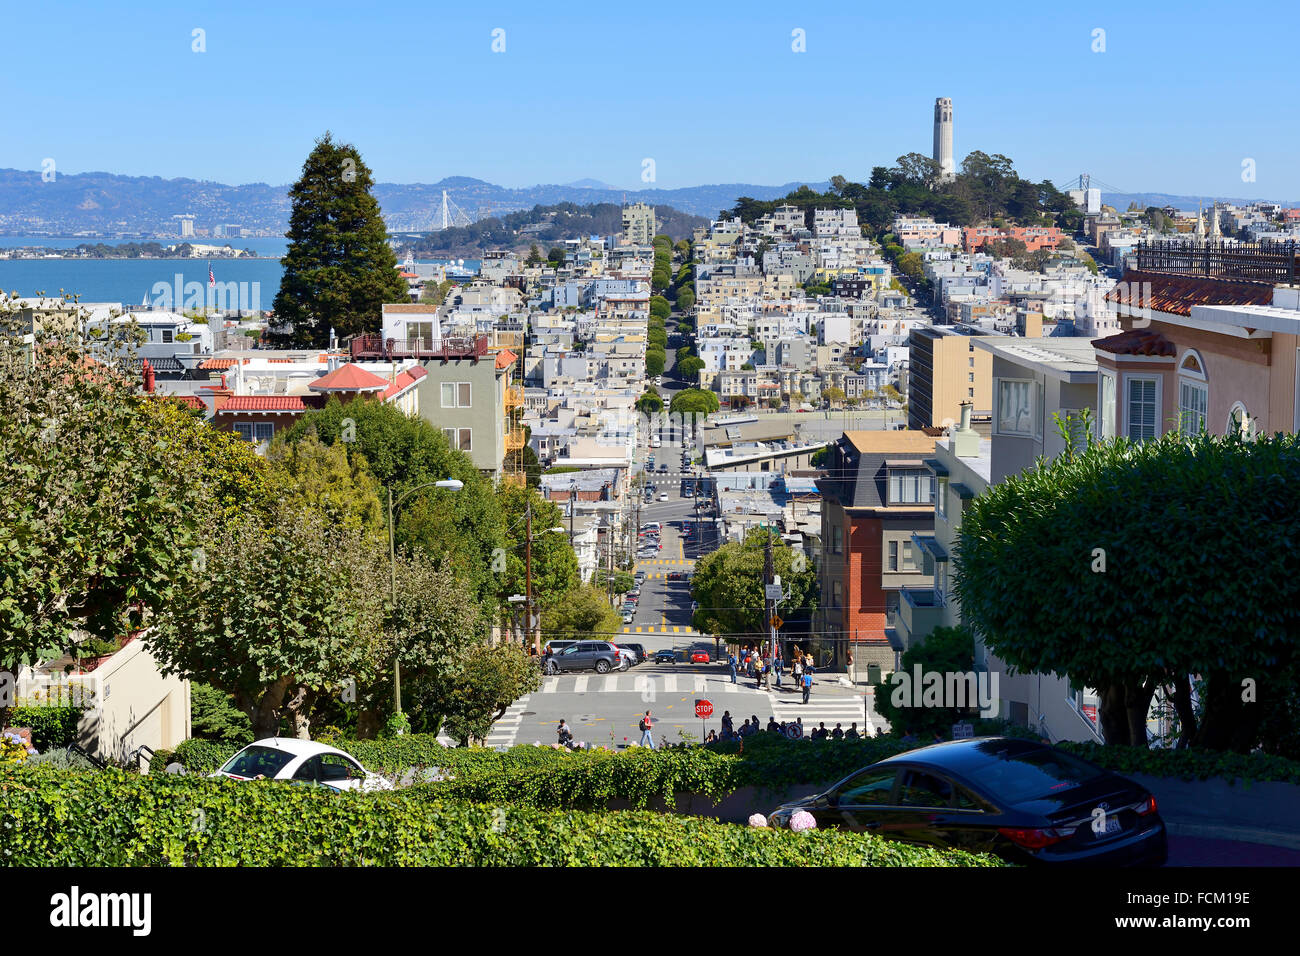 View from top of Lombard Street looking towards Telegraph Hill, San Francisco, California, USA - Stock Image